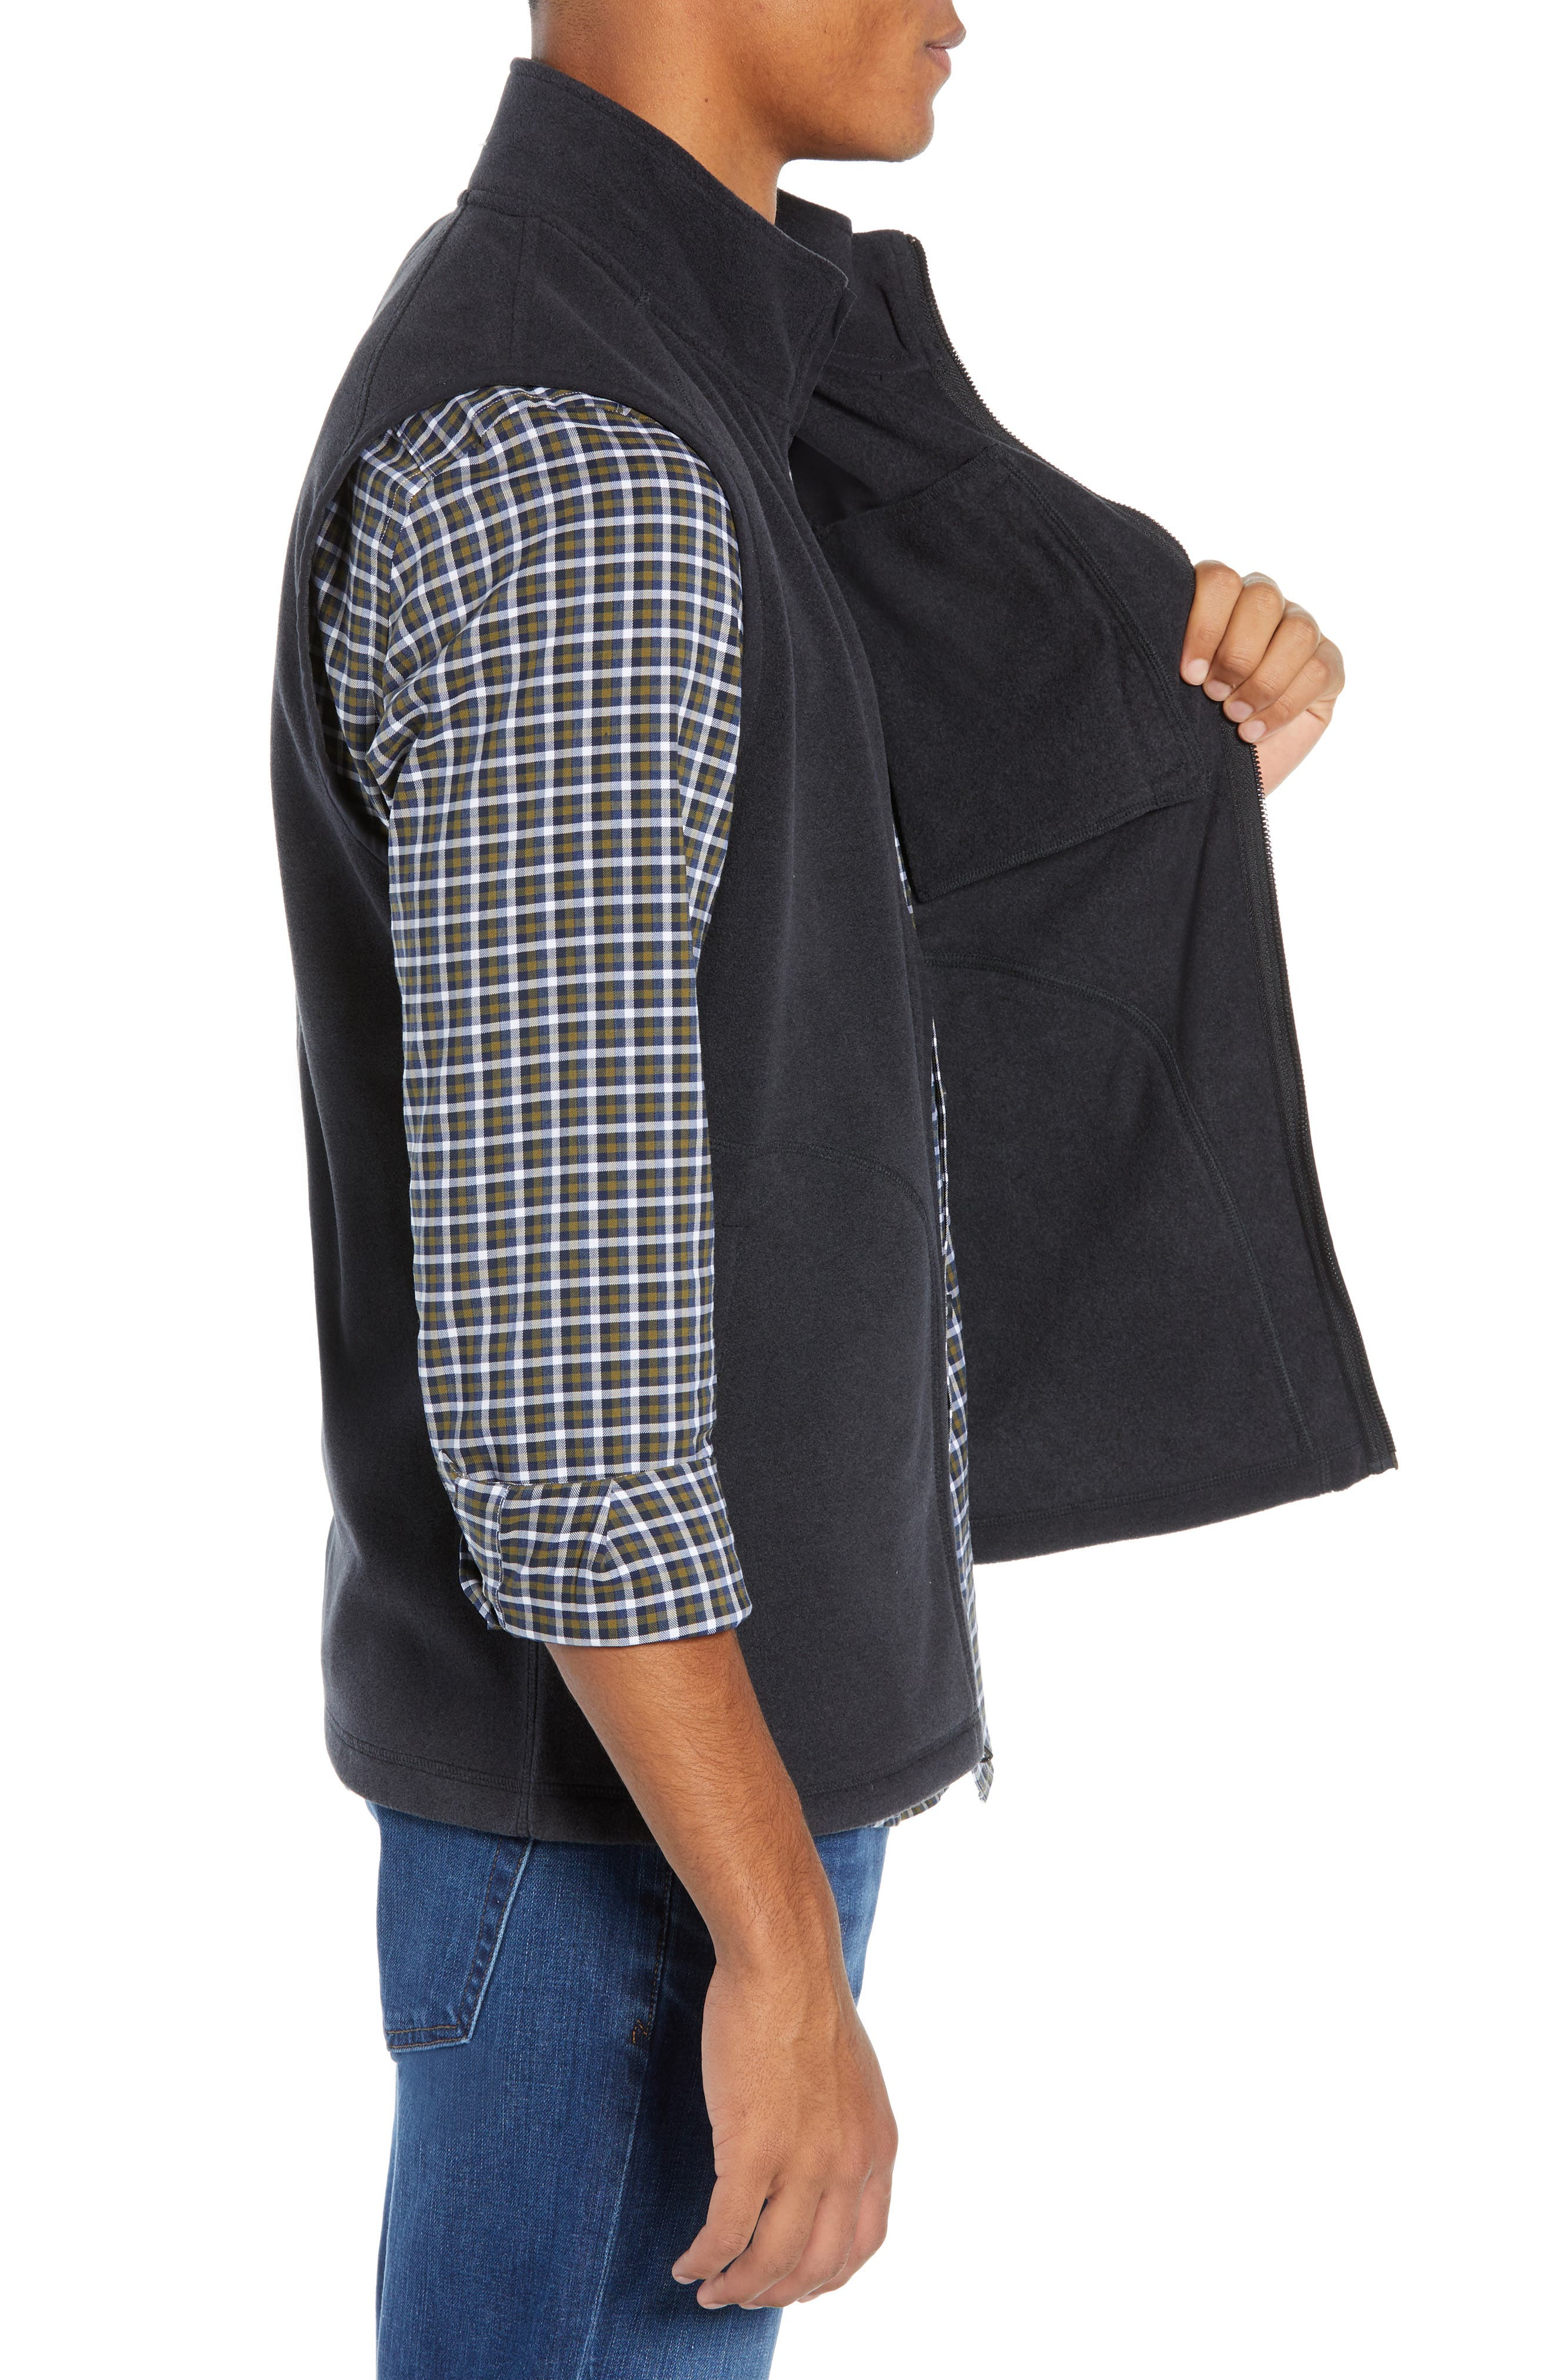 Polar Fleece Vest,                             Alternate thumbnail 3, color,                             001